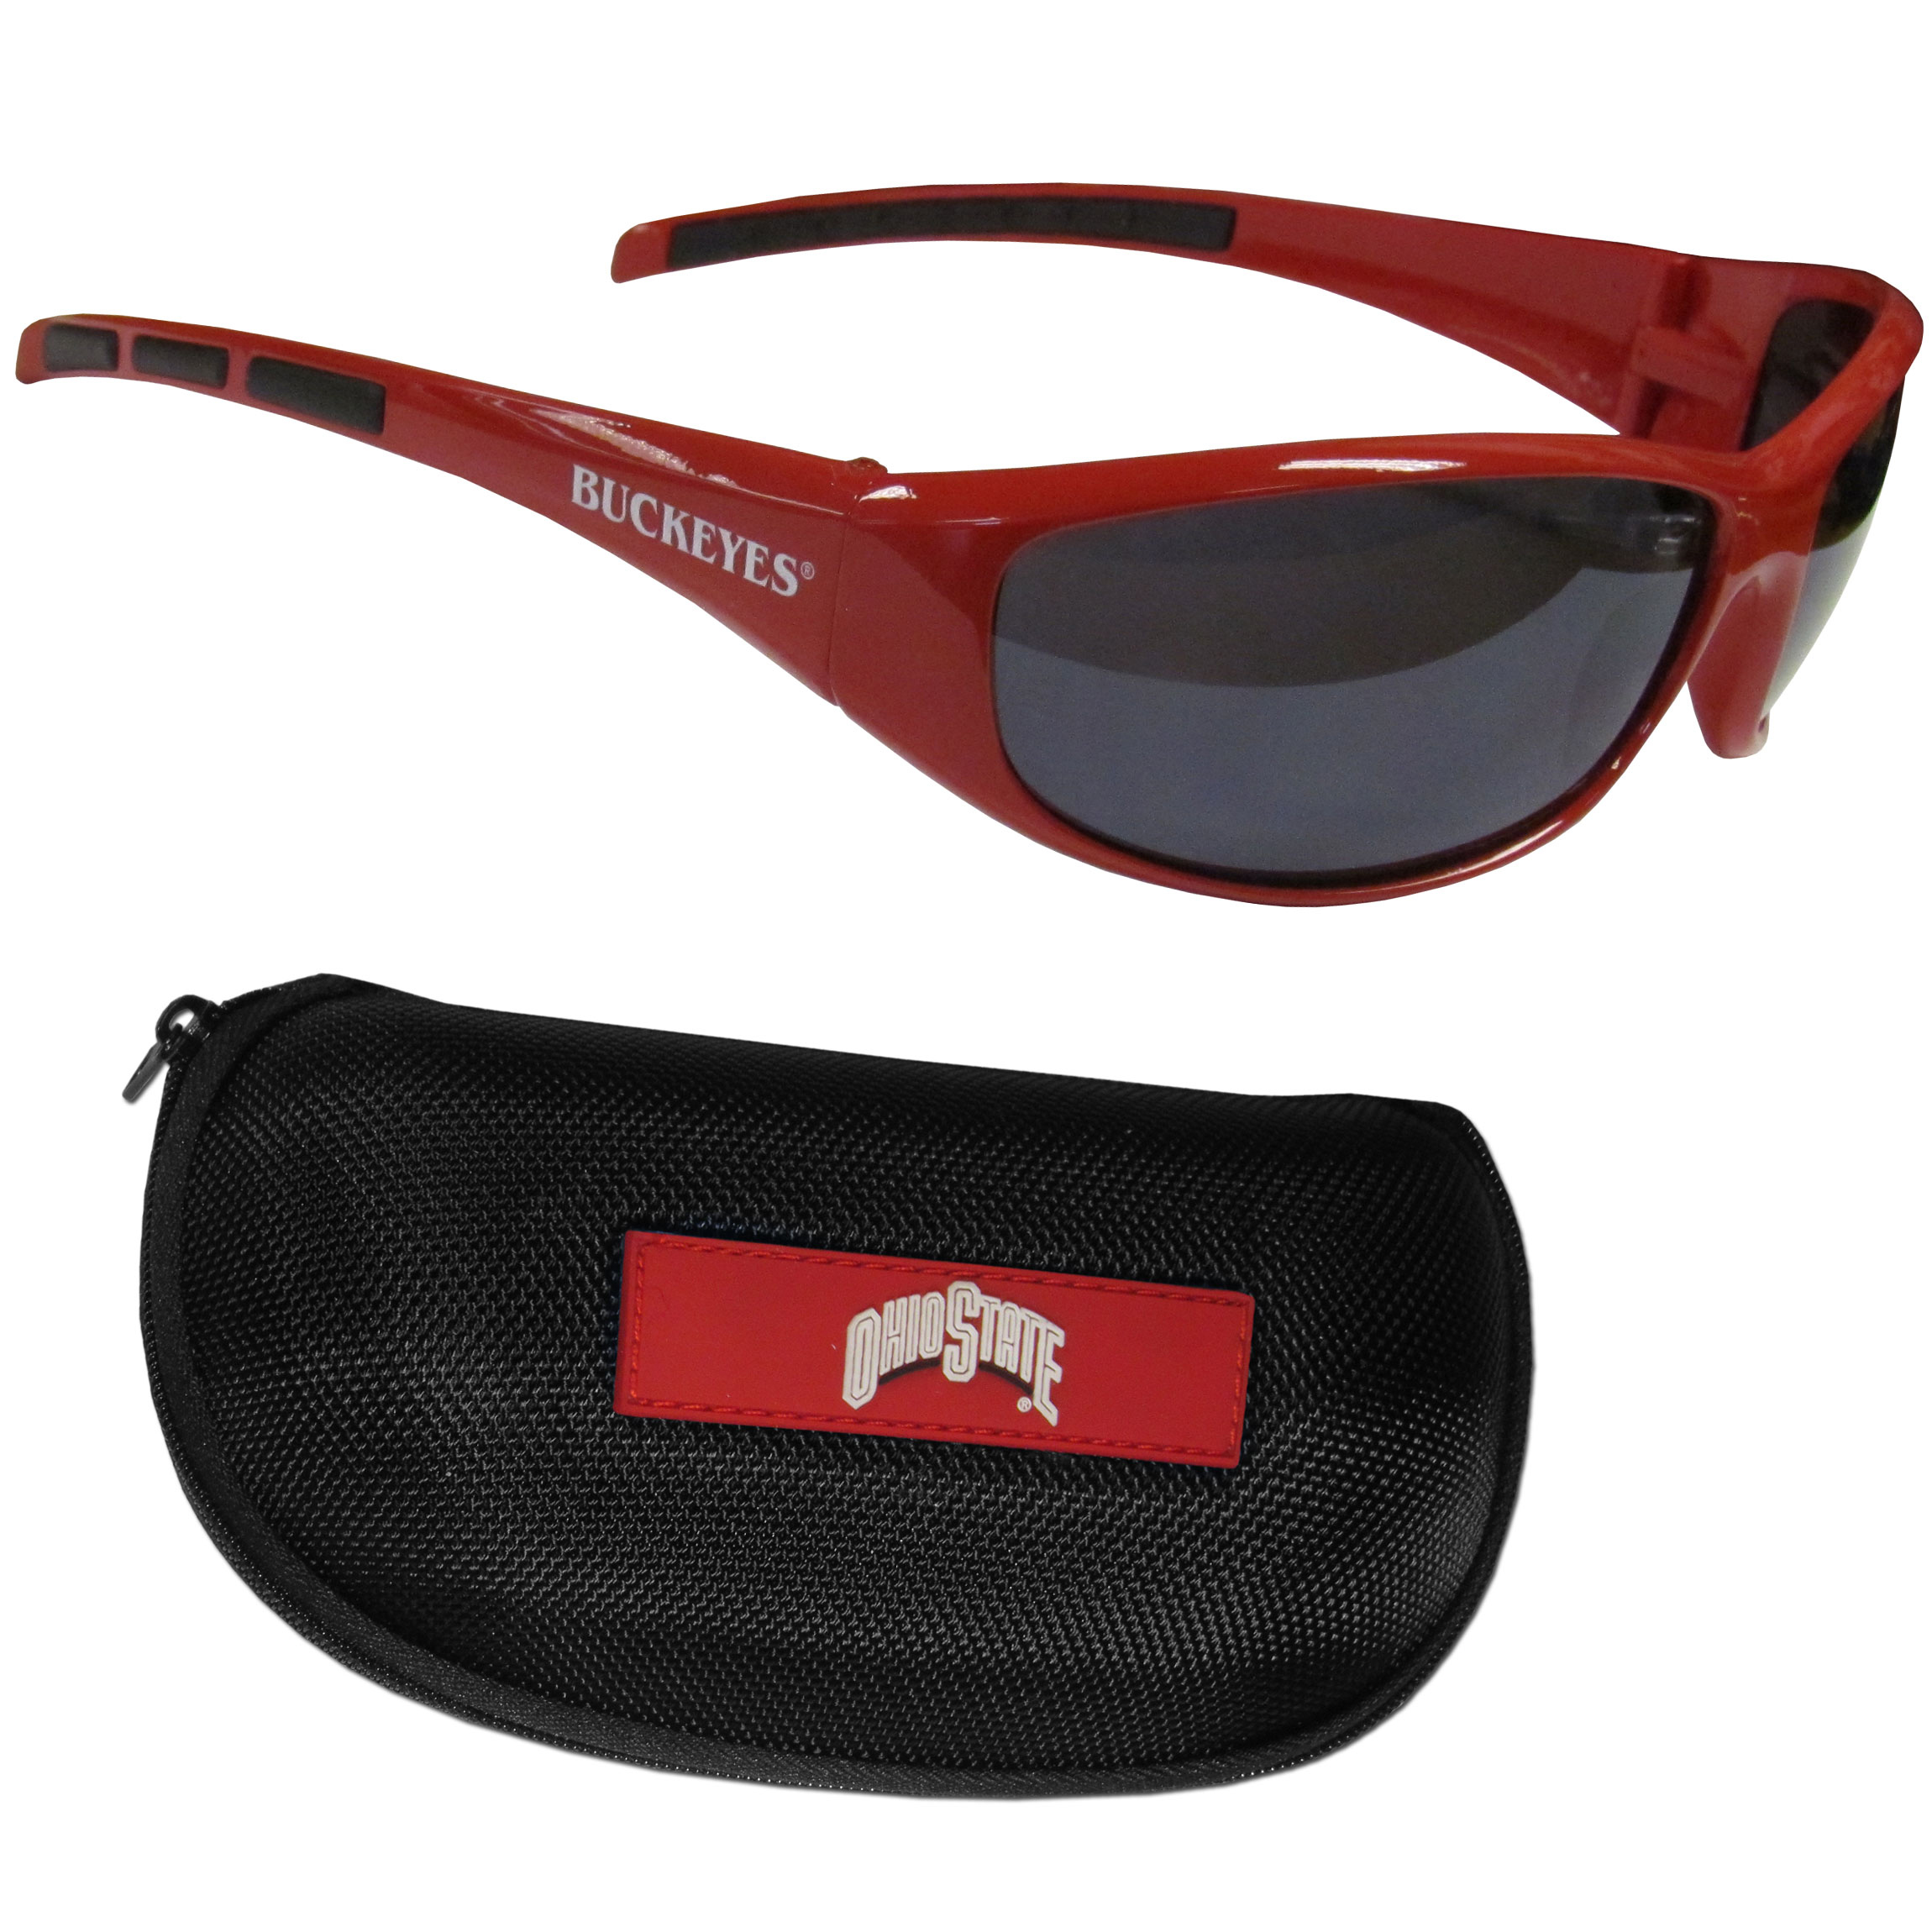 Ohio St. Buckeyes Wrap Sunglass and Case Set - This great set includes a high quality pair of Ohio St. Buckeyes wrap sunglasses and hard carrying case.